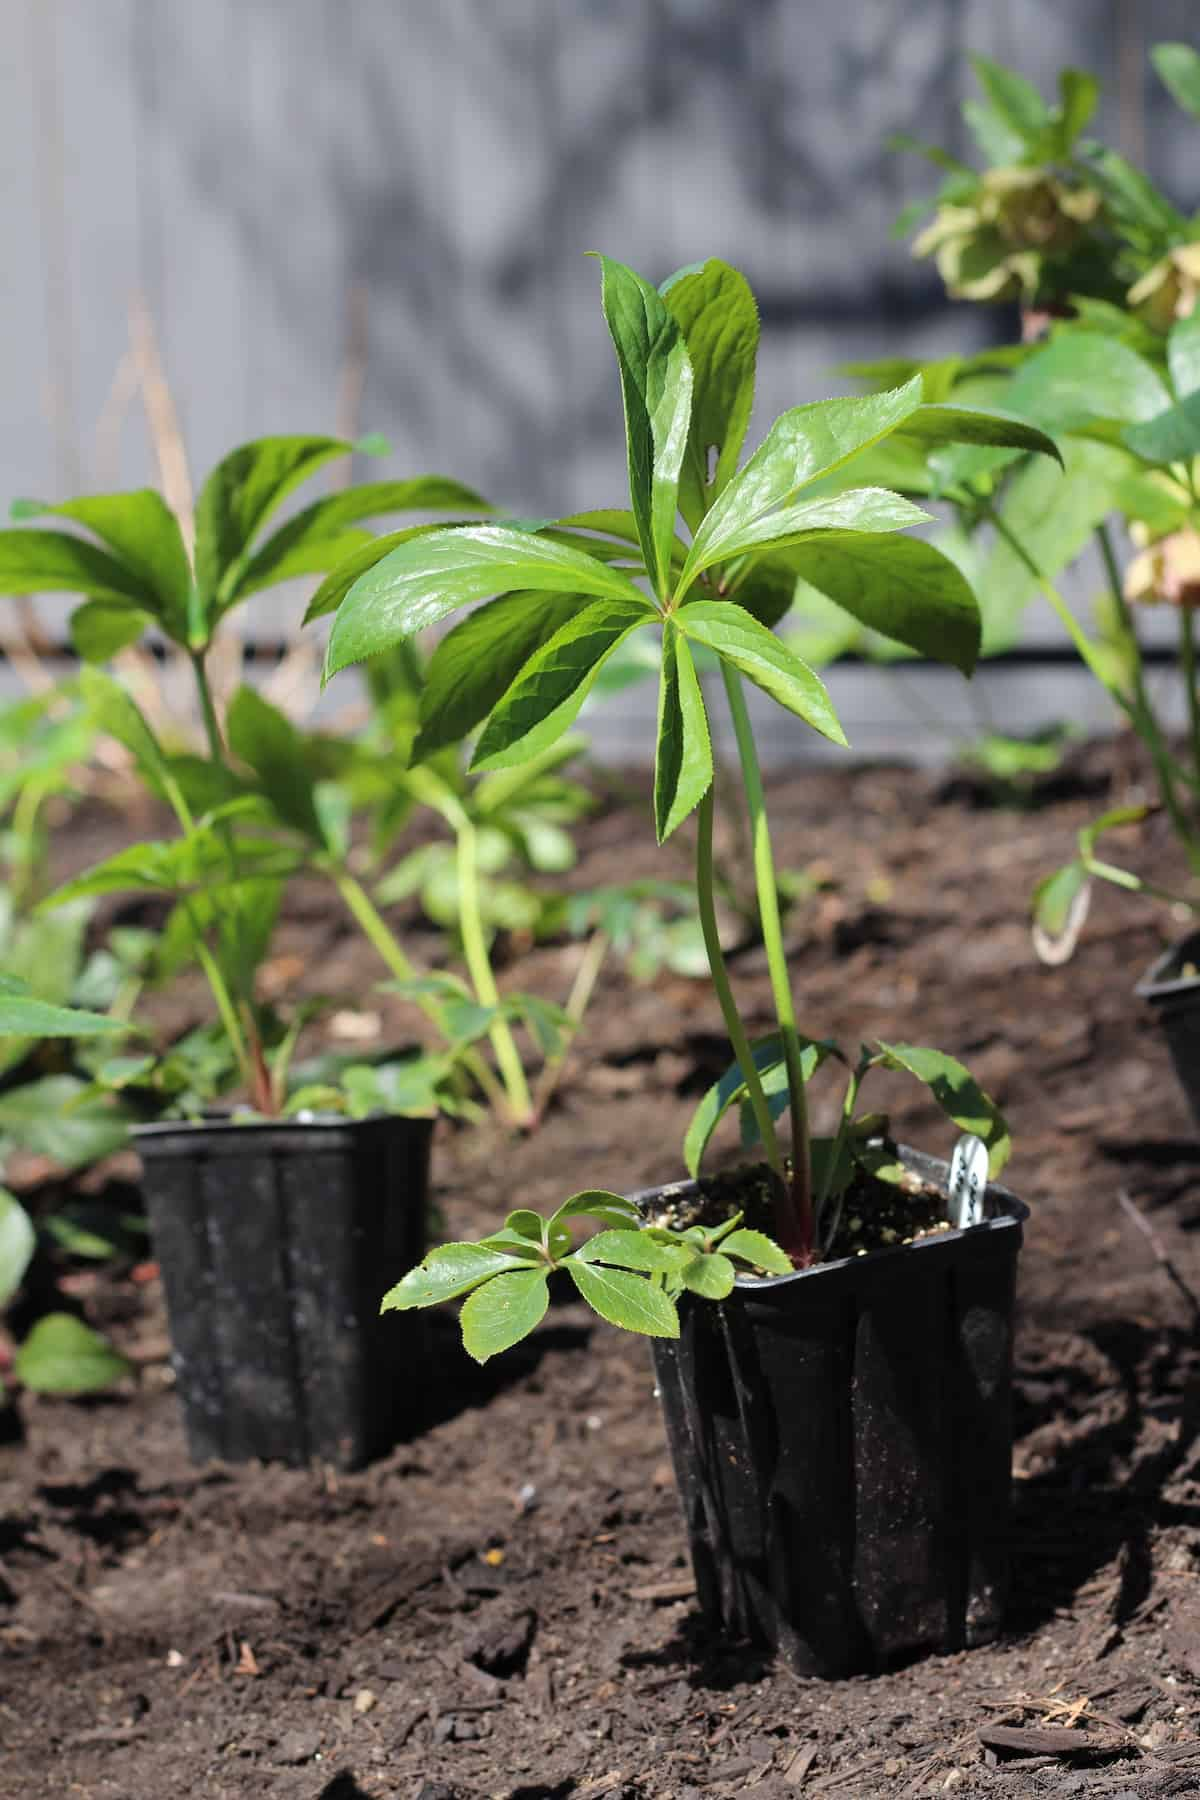 Hellebore Plants in Small Pots Laid Out on Landscape Soil